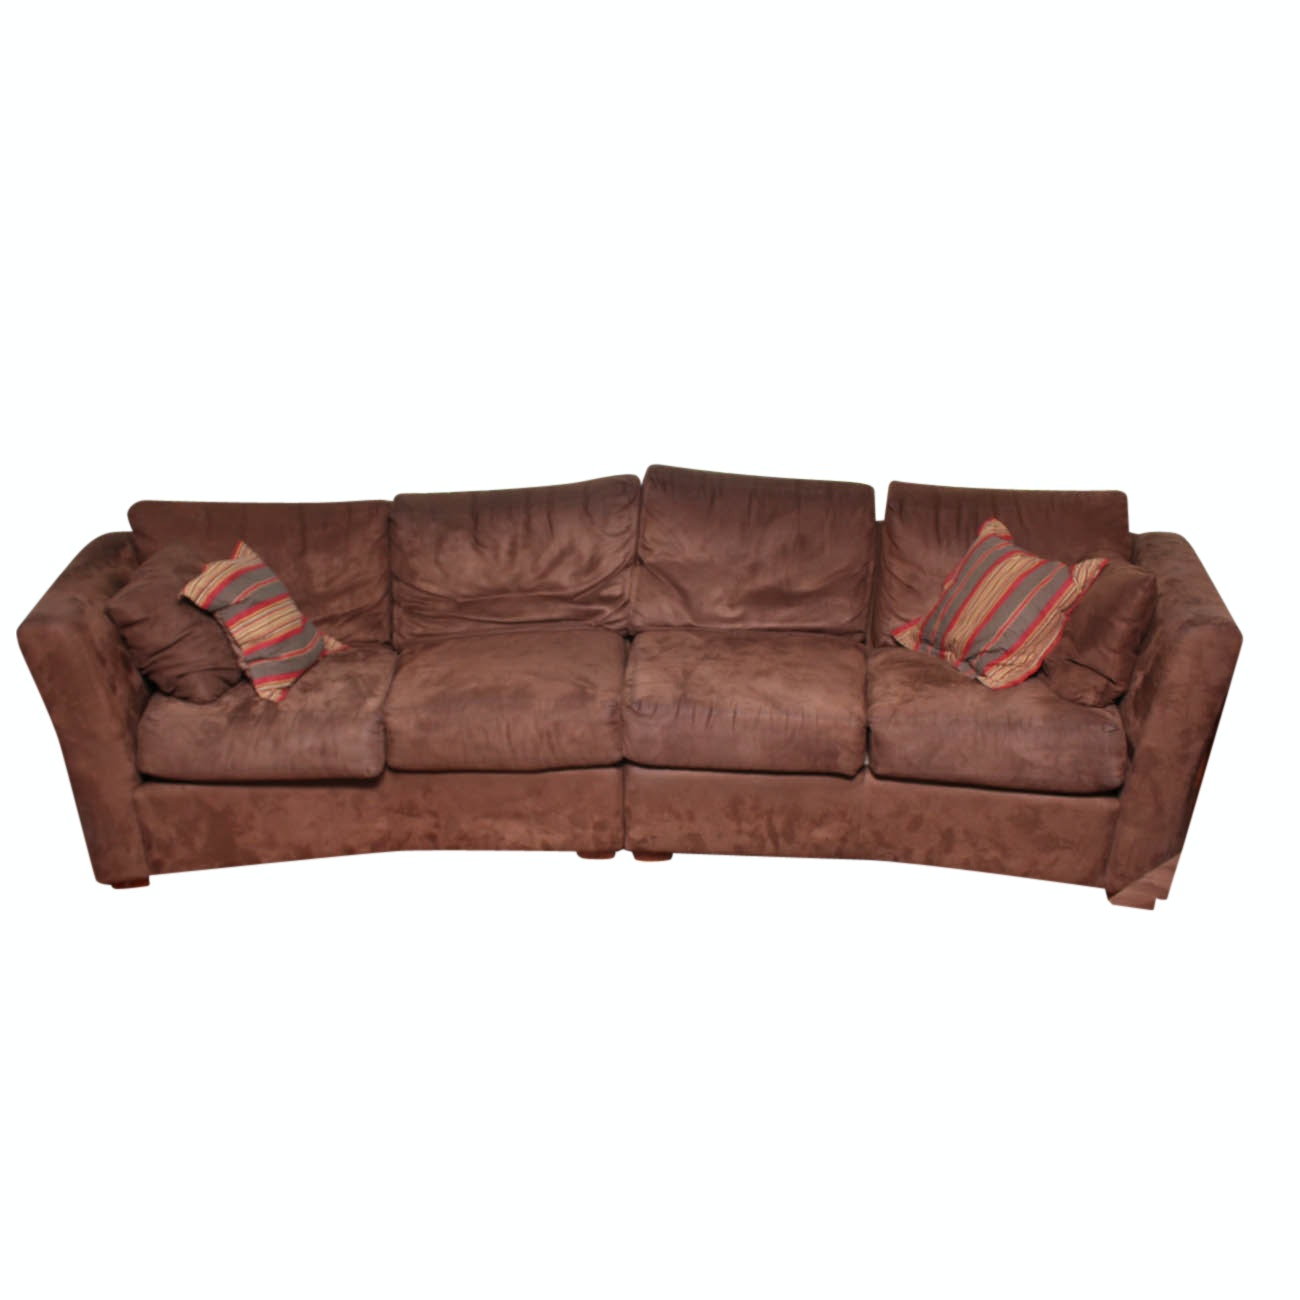 Sofa Express Sectional Sofa